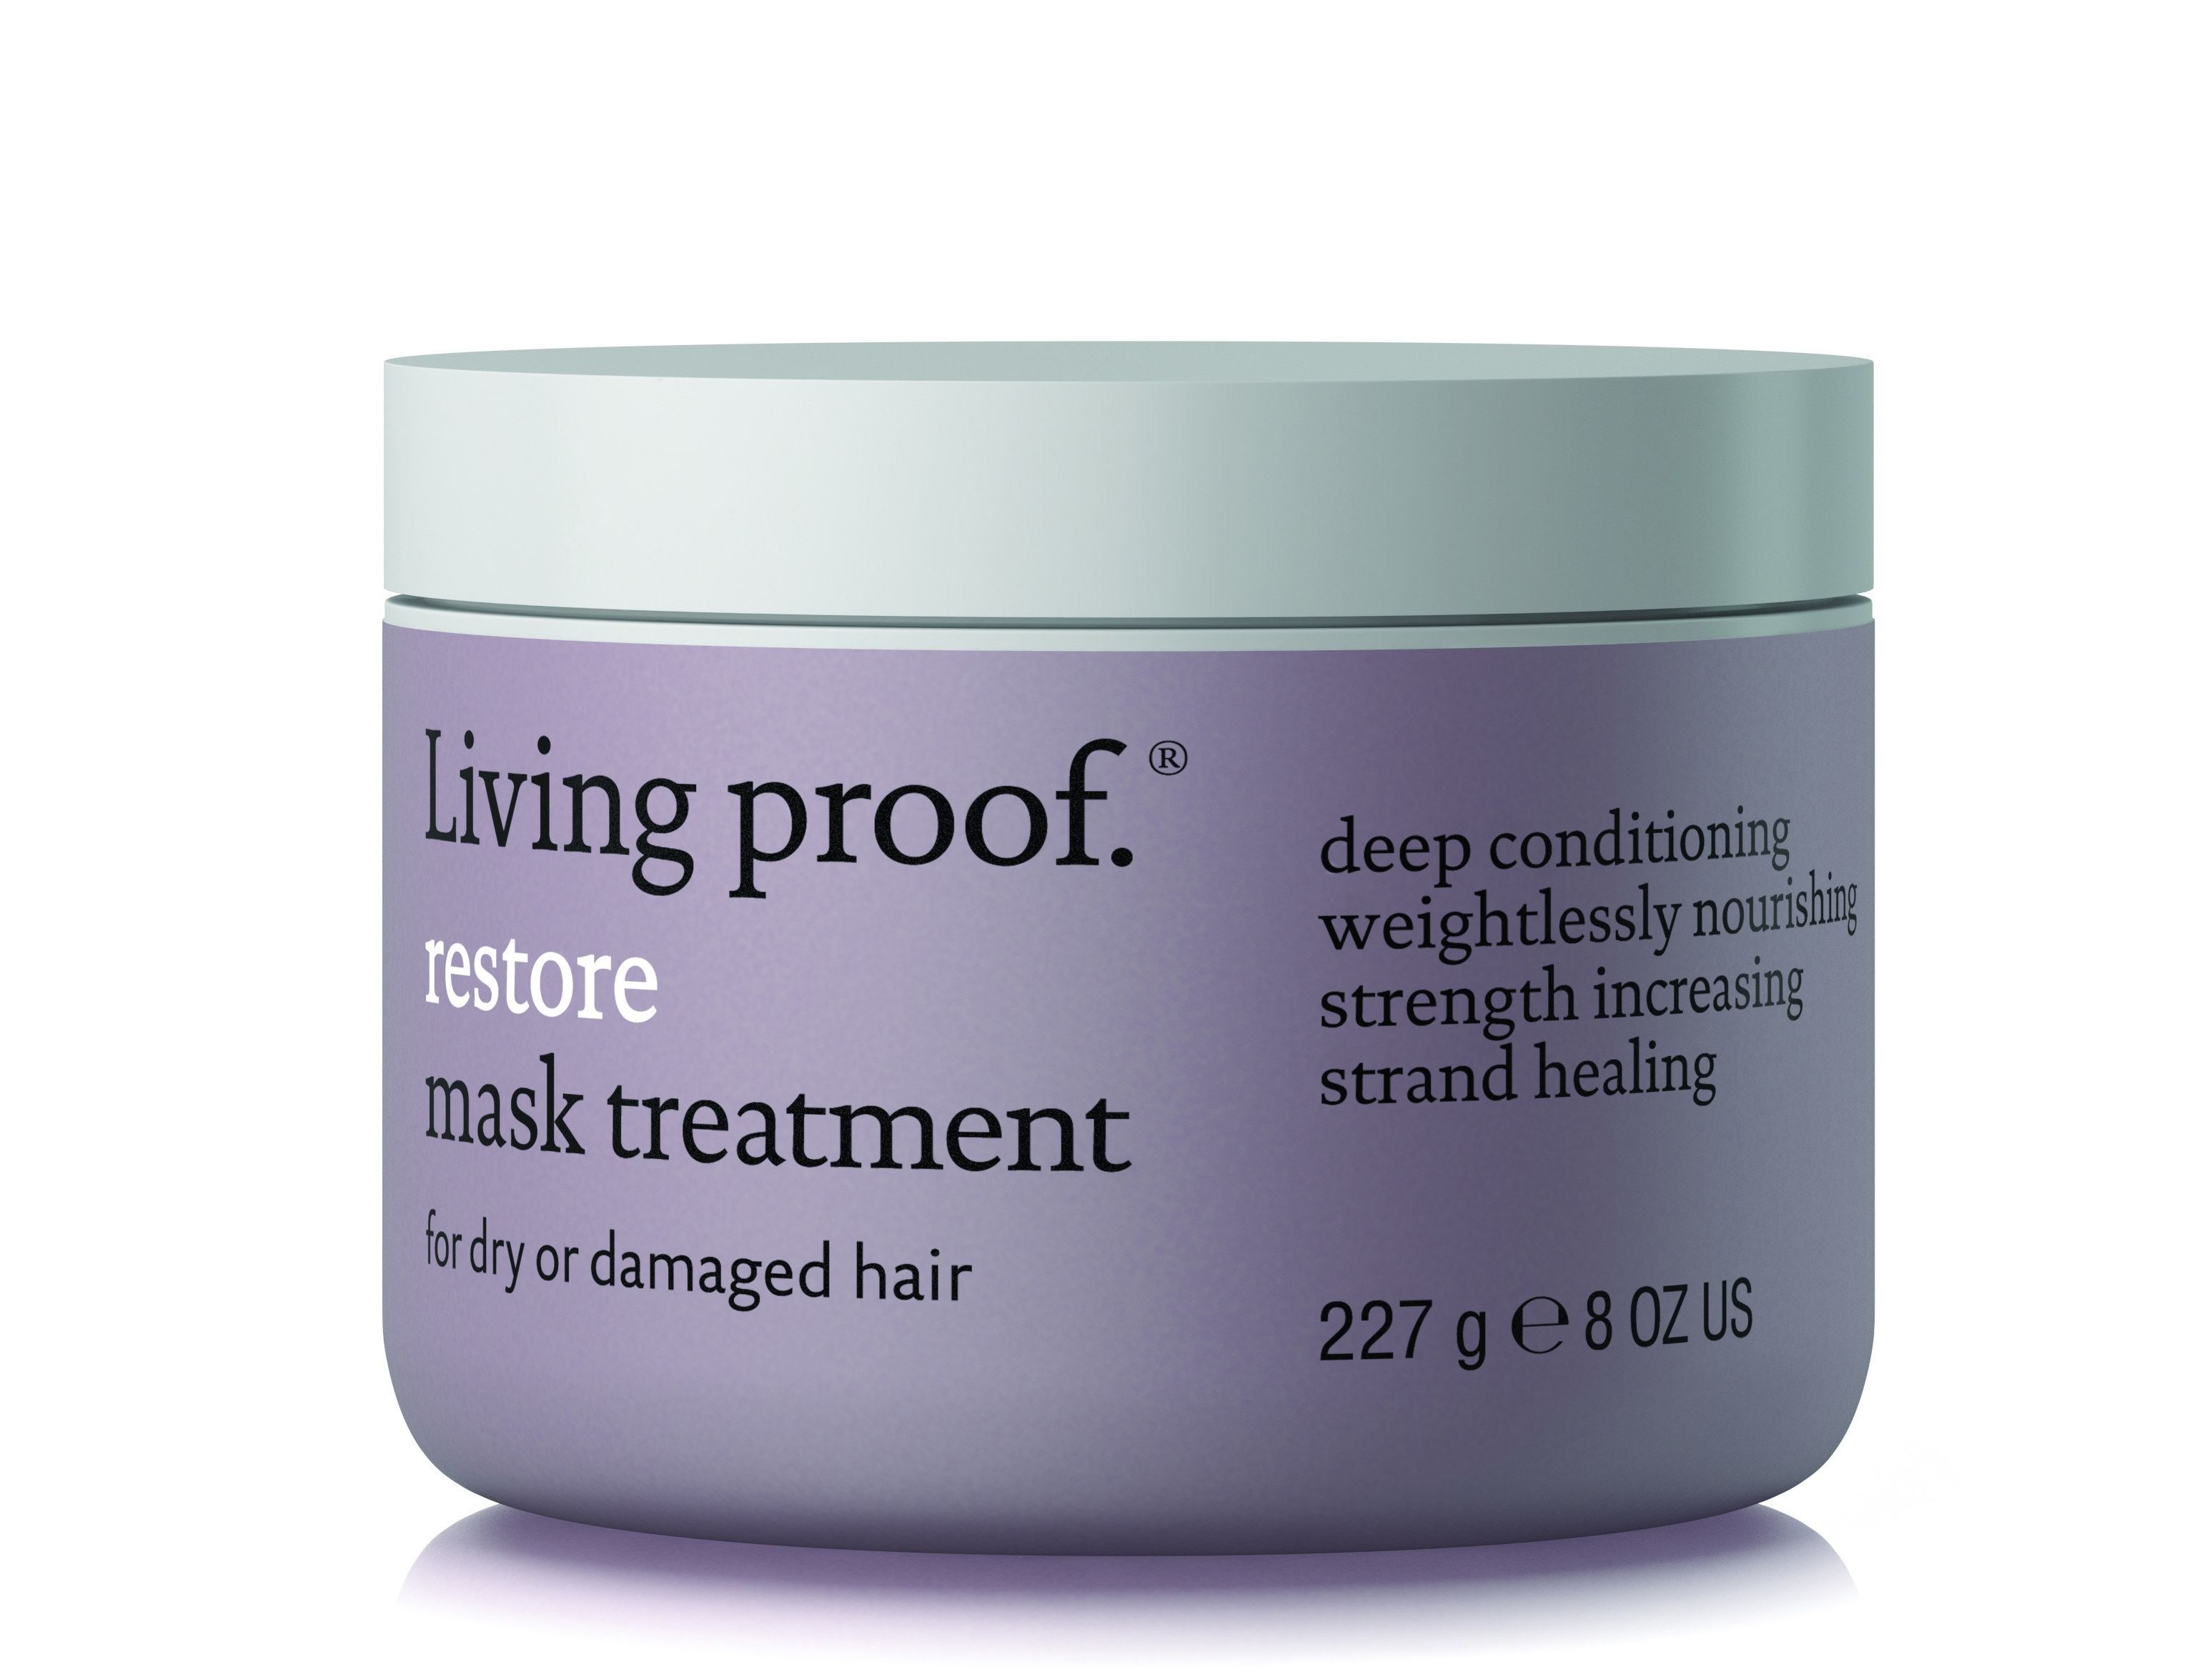 The One Thing: Living Proof Restore Mask